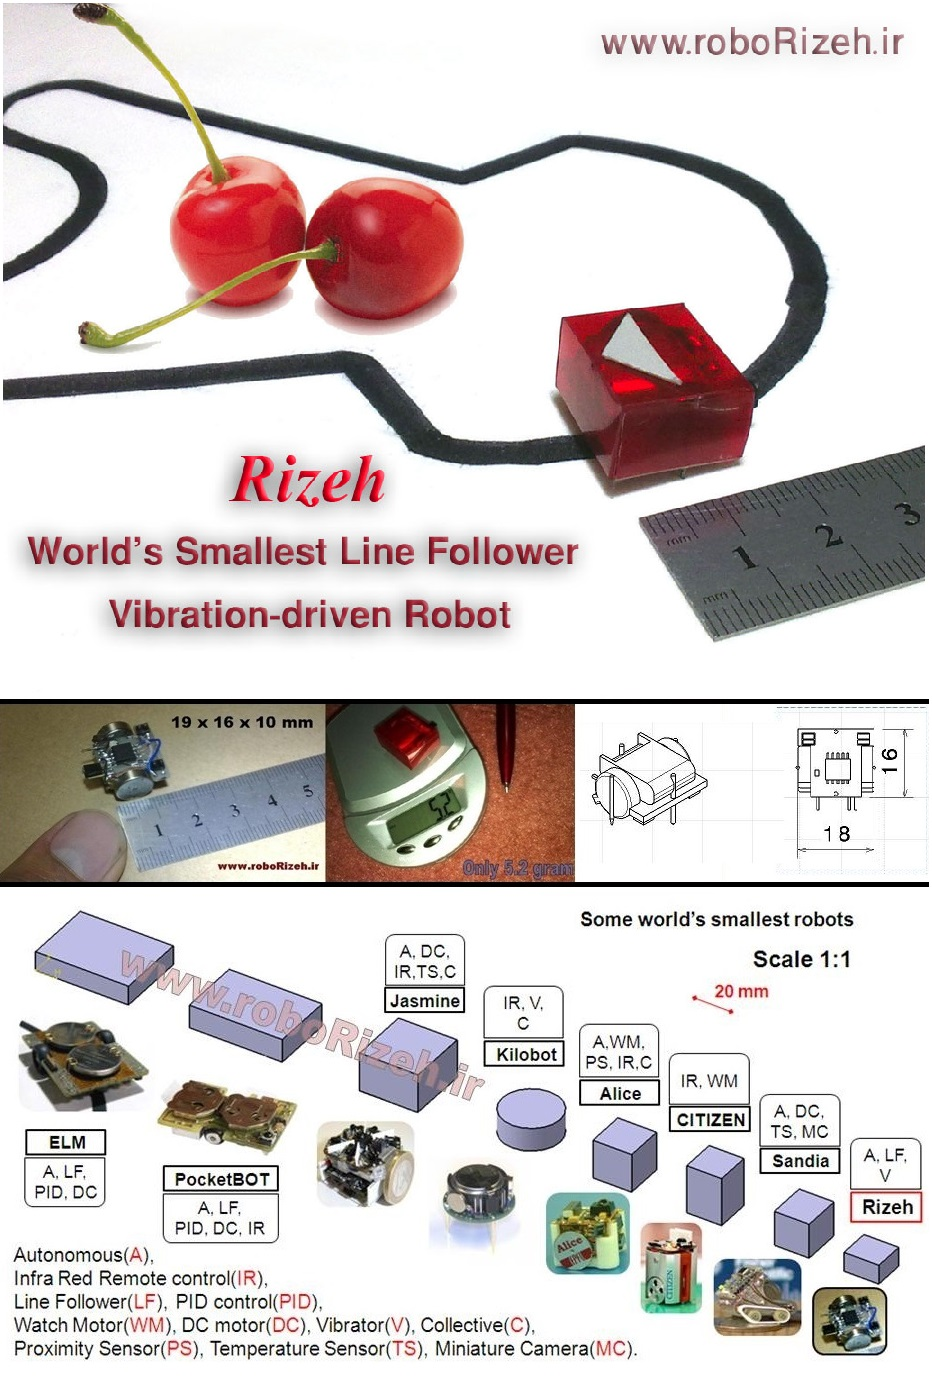 How to make world's smallest line follower robot (robo Rizeh)